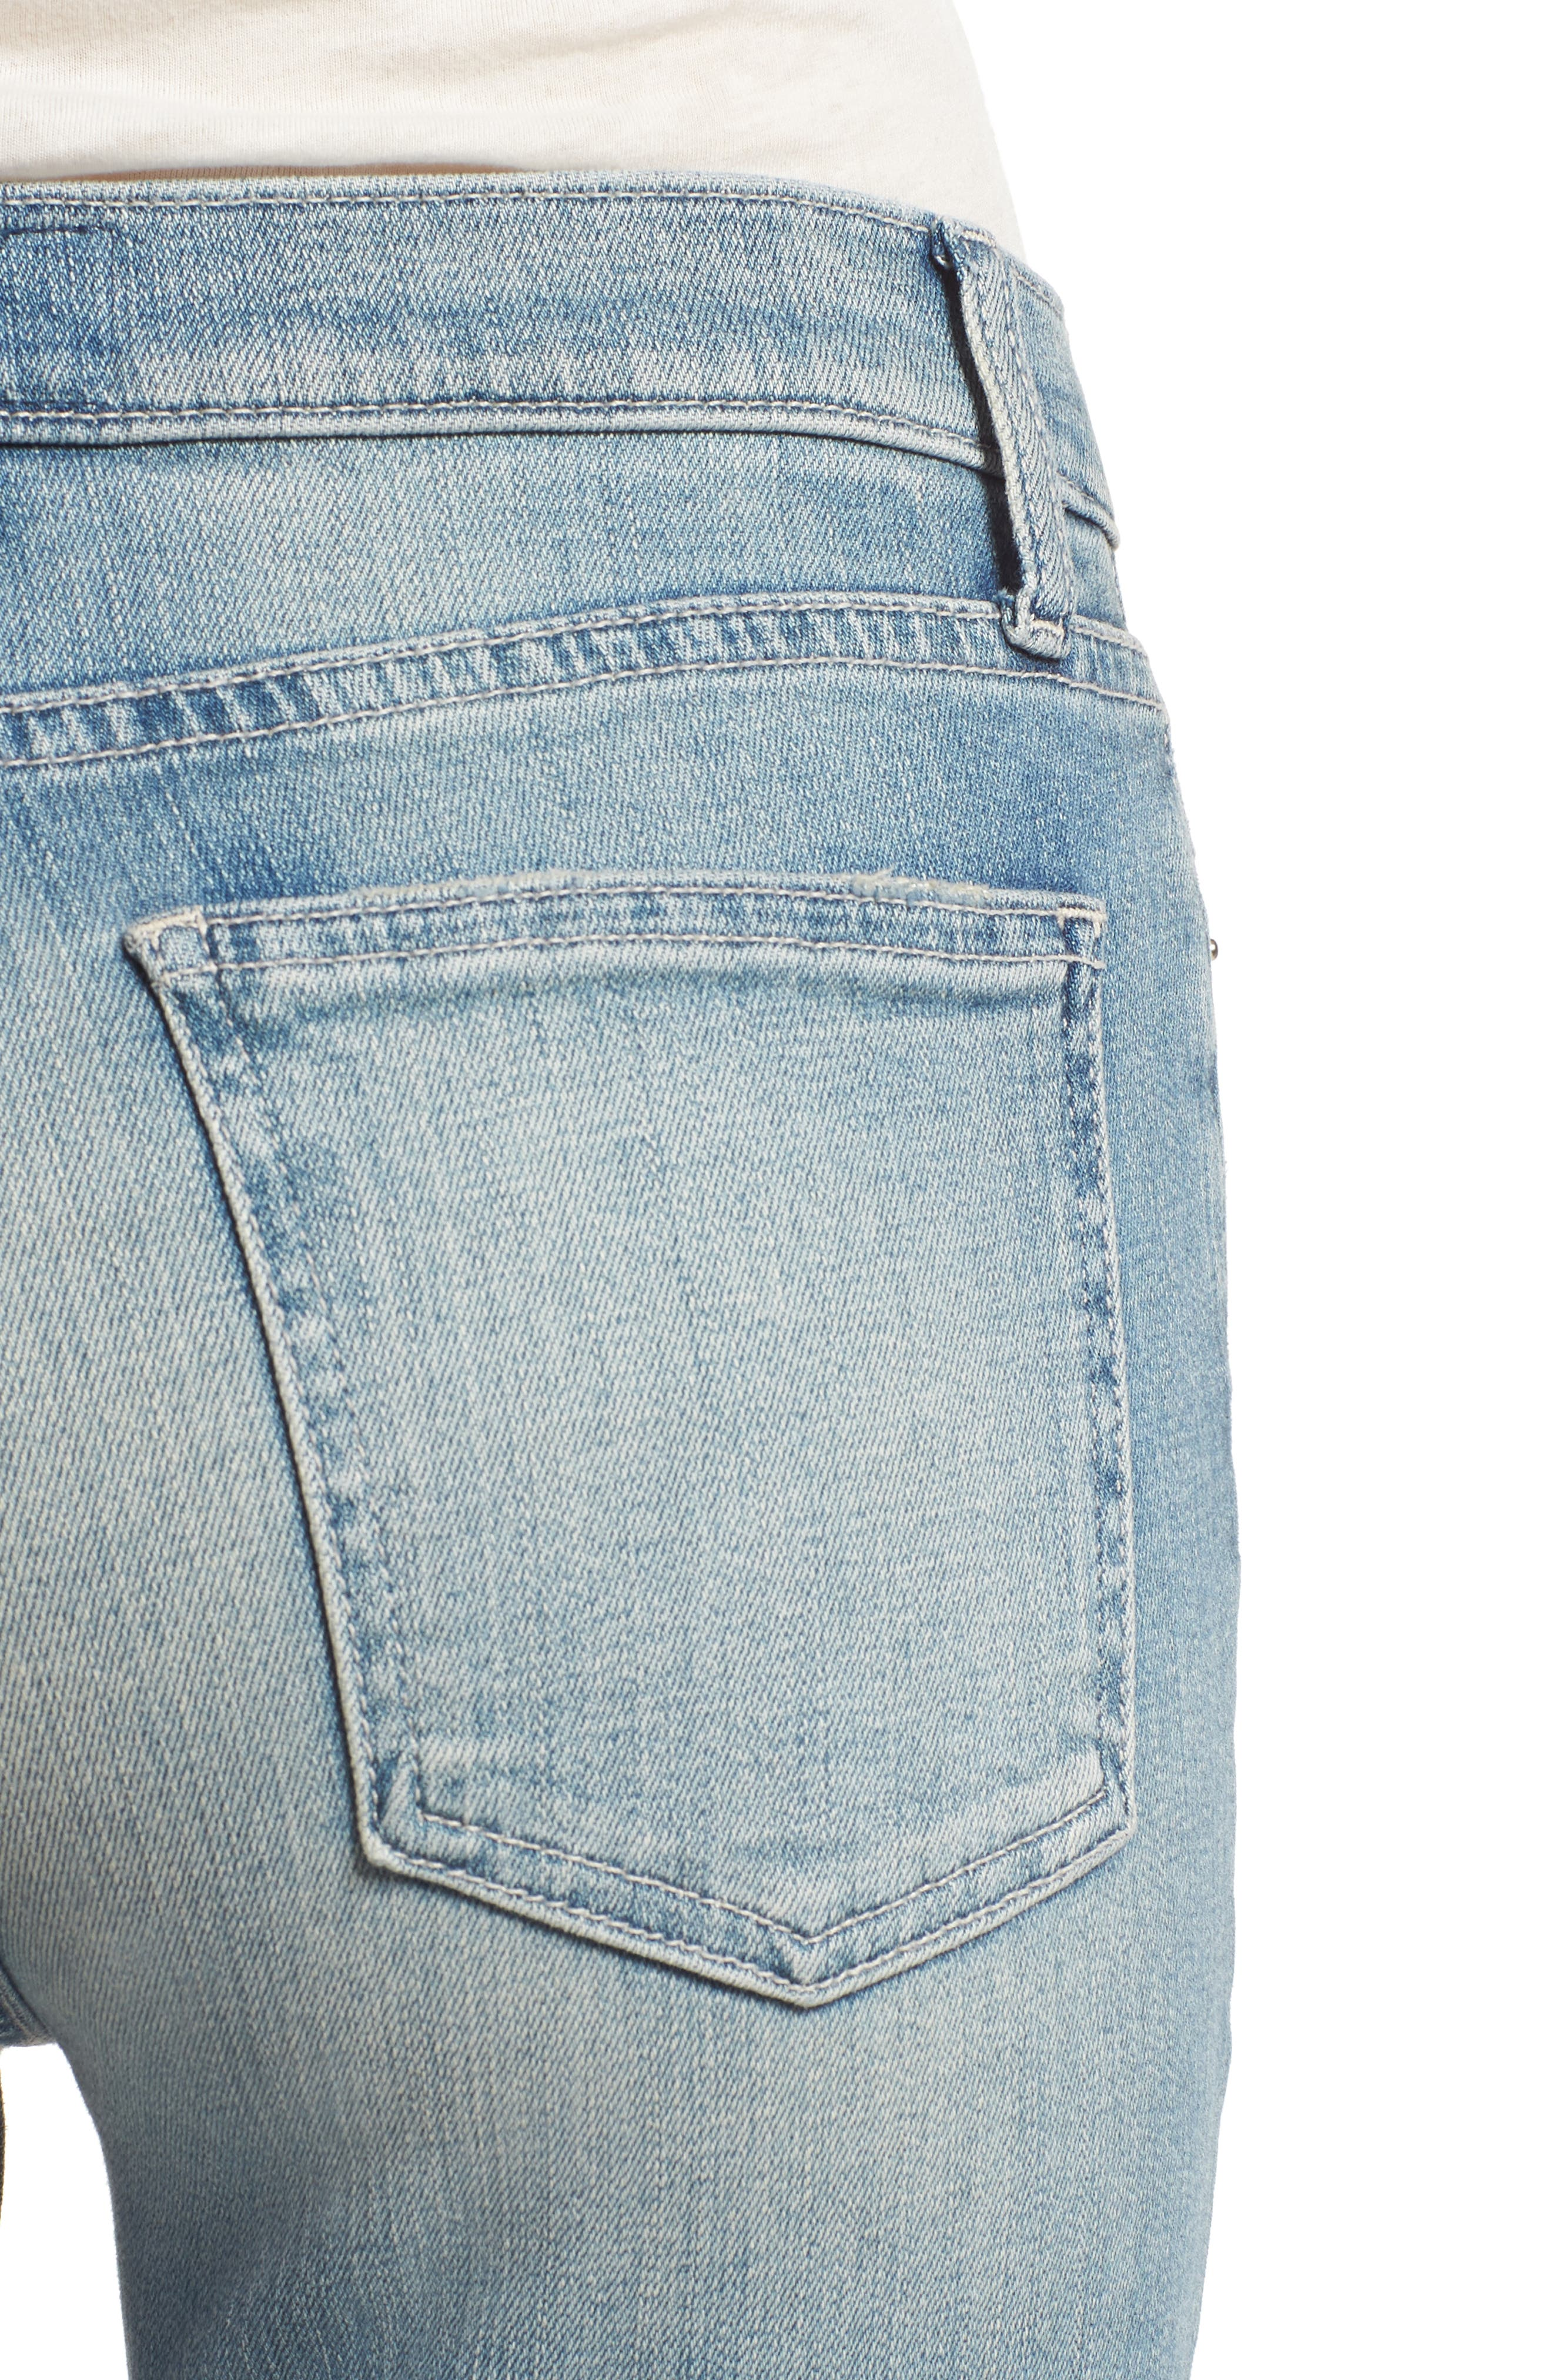 The High Waist Straight Jeans,                             Alternate thumbnail 4, color,                             475